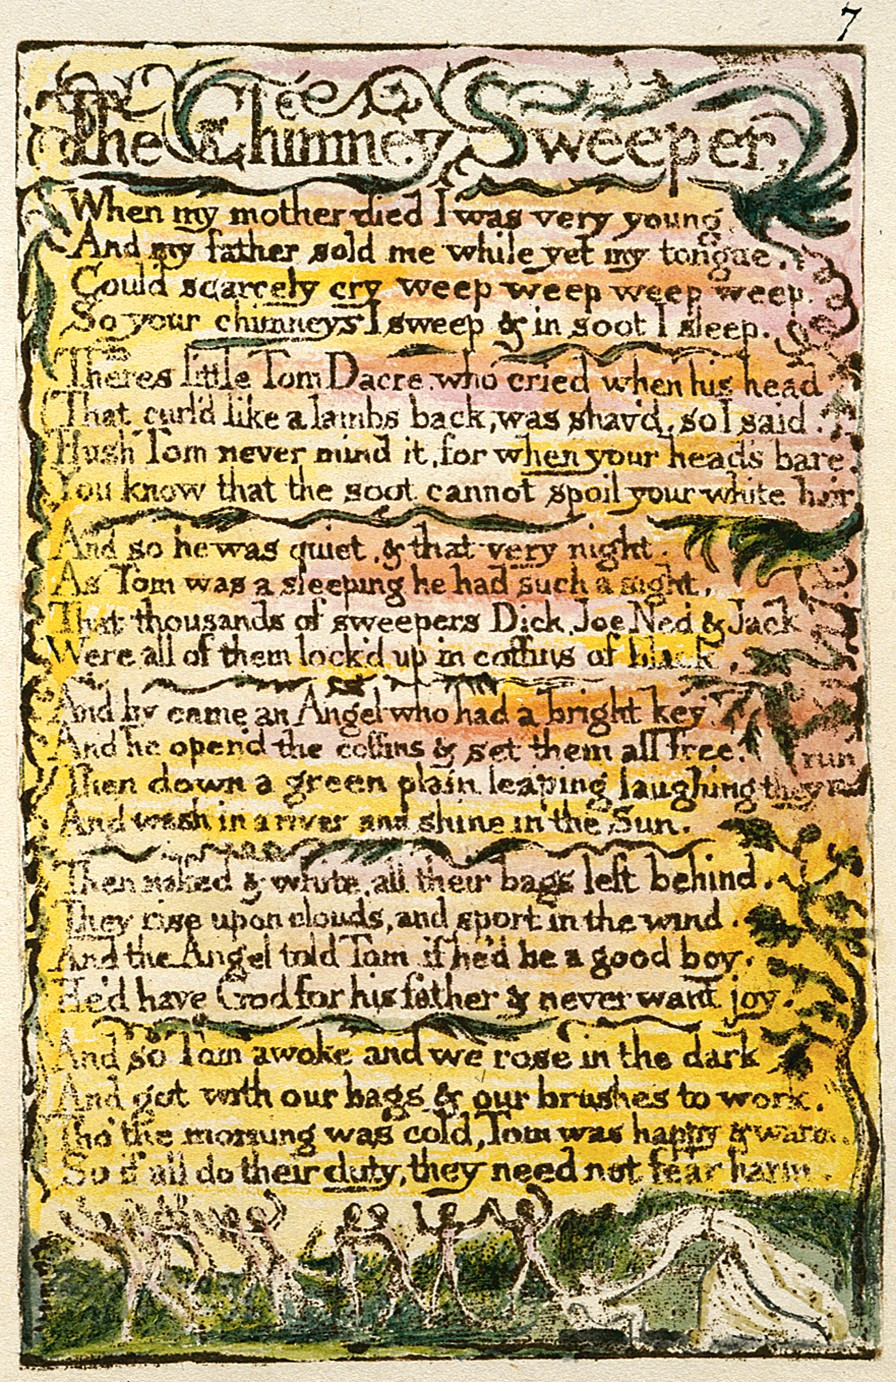 songs of innocence the chimney sweeper literary devices It's kind of surprising but there's a lot of music in this sad poem we have two  references to notes of woe, and in the last stanza the chimney sweeper says he  is.